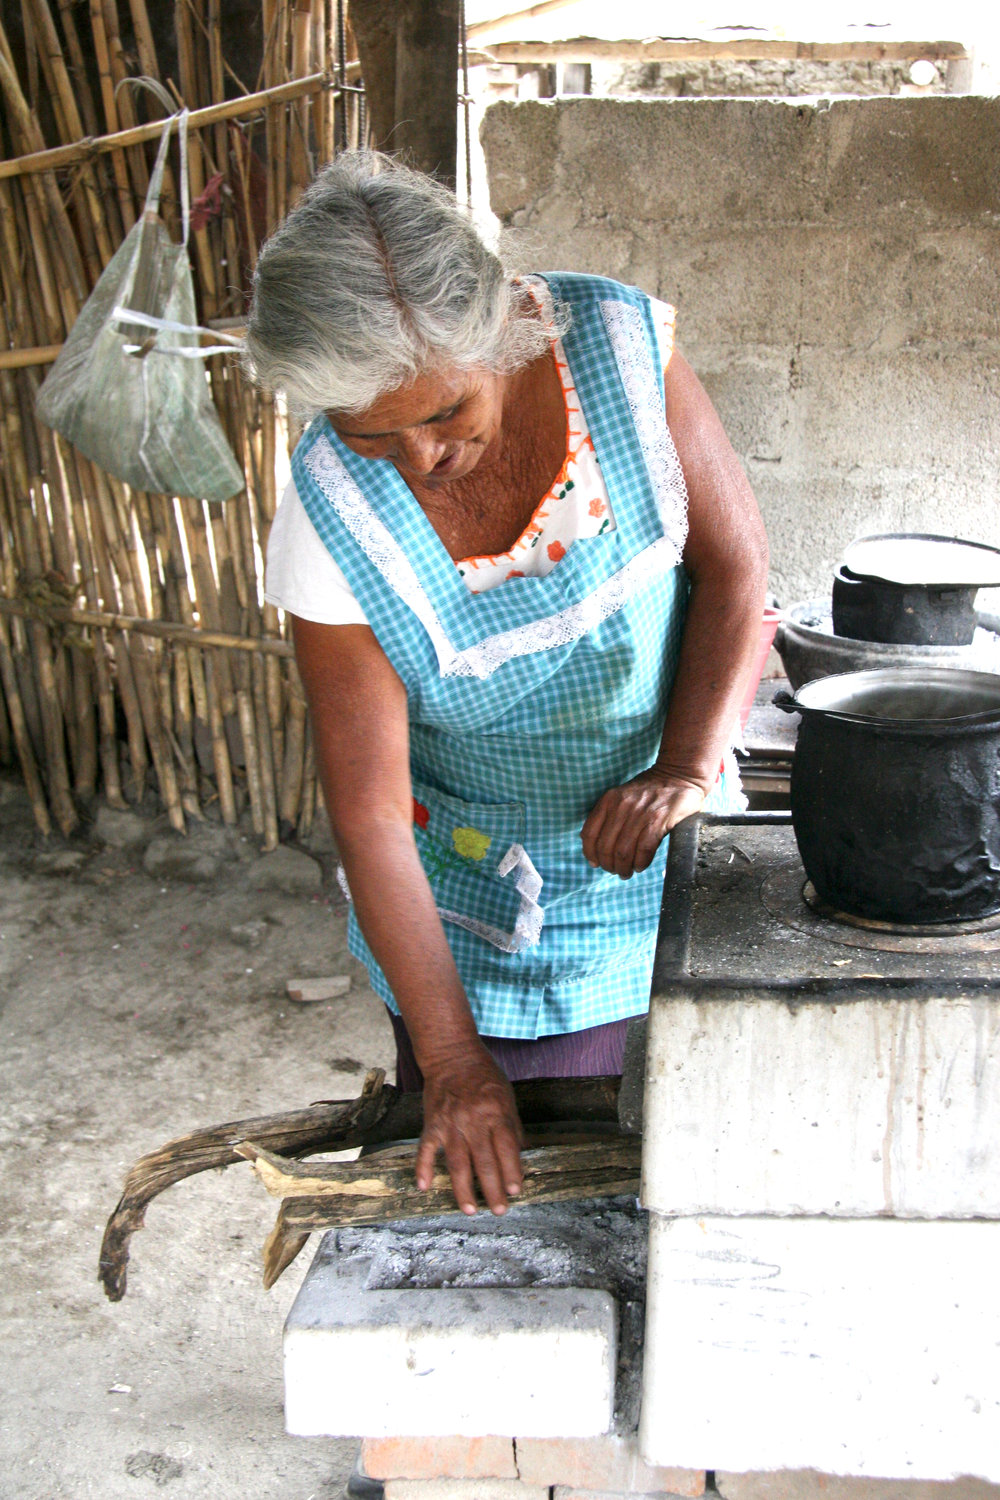 The ONIL Plancha stove was designed taking into account the needs of women to prepare food in rural homes, where the consumption of firewood is extremely high and out of budget. It uses a combustion chamber designed to take advantage of a high percentage of the energy generated and reducing fuel consumption by up to 65% compared to an open-fire (three-stone fire).